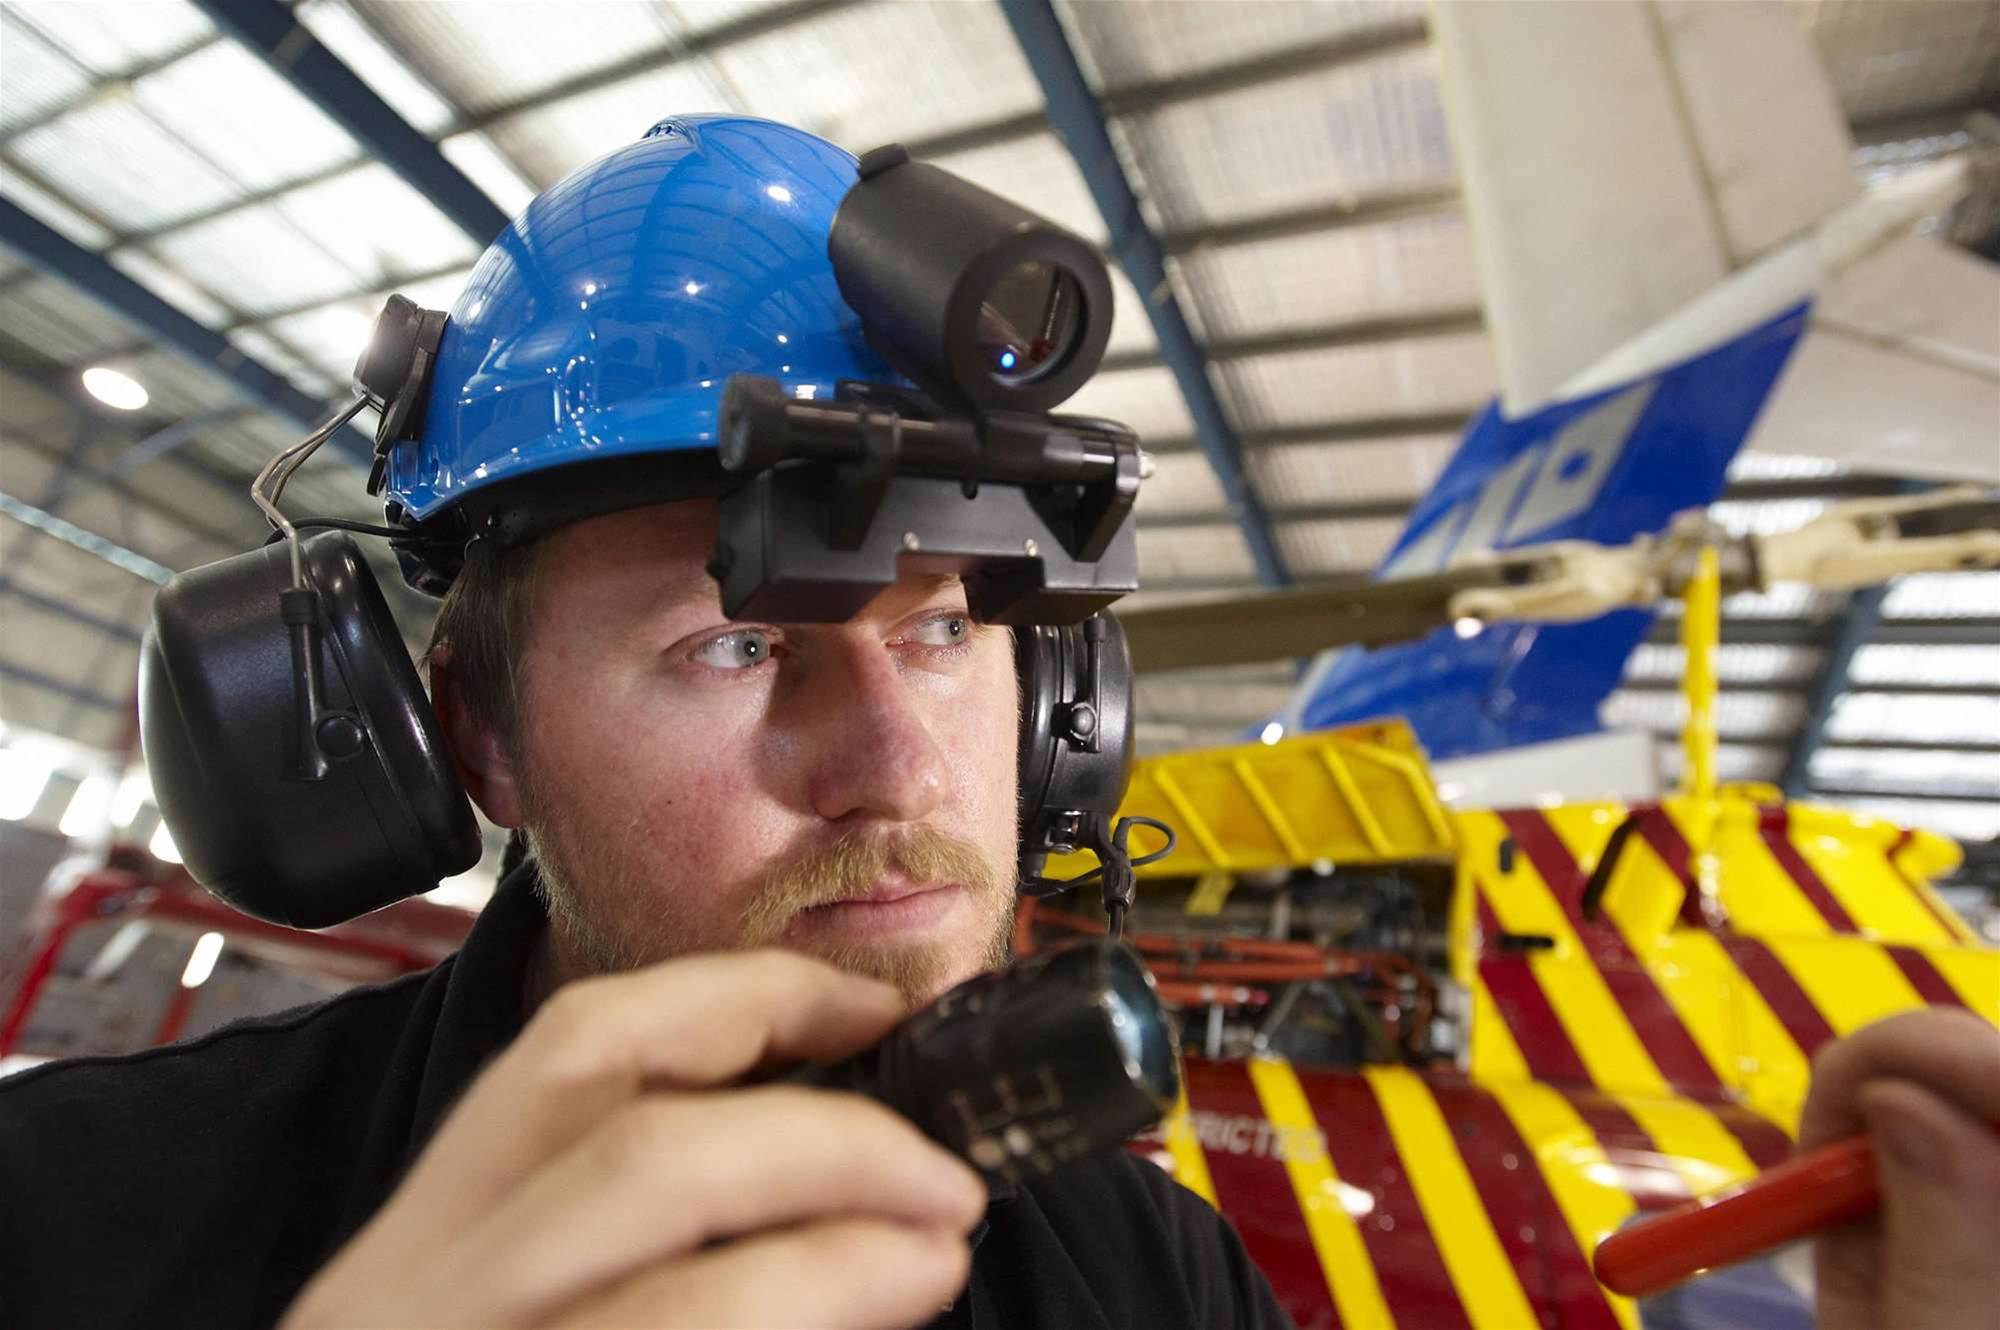 CSIRO to equip aircraft technicians with wearable tech